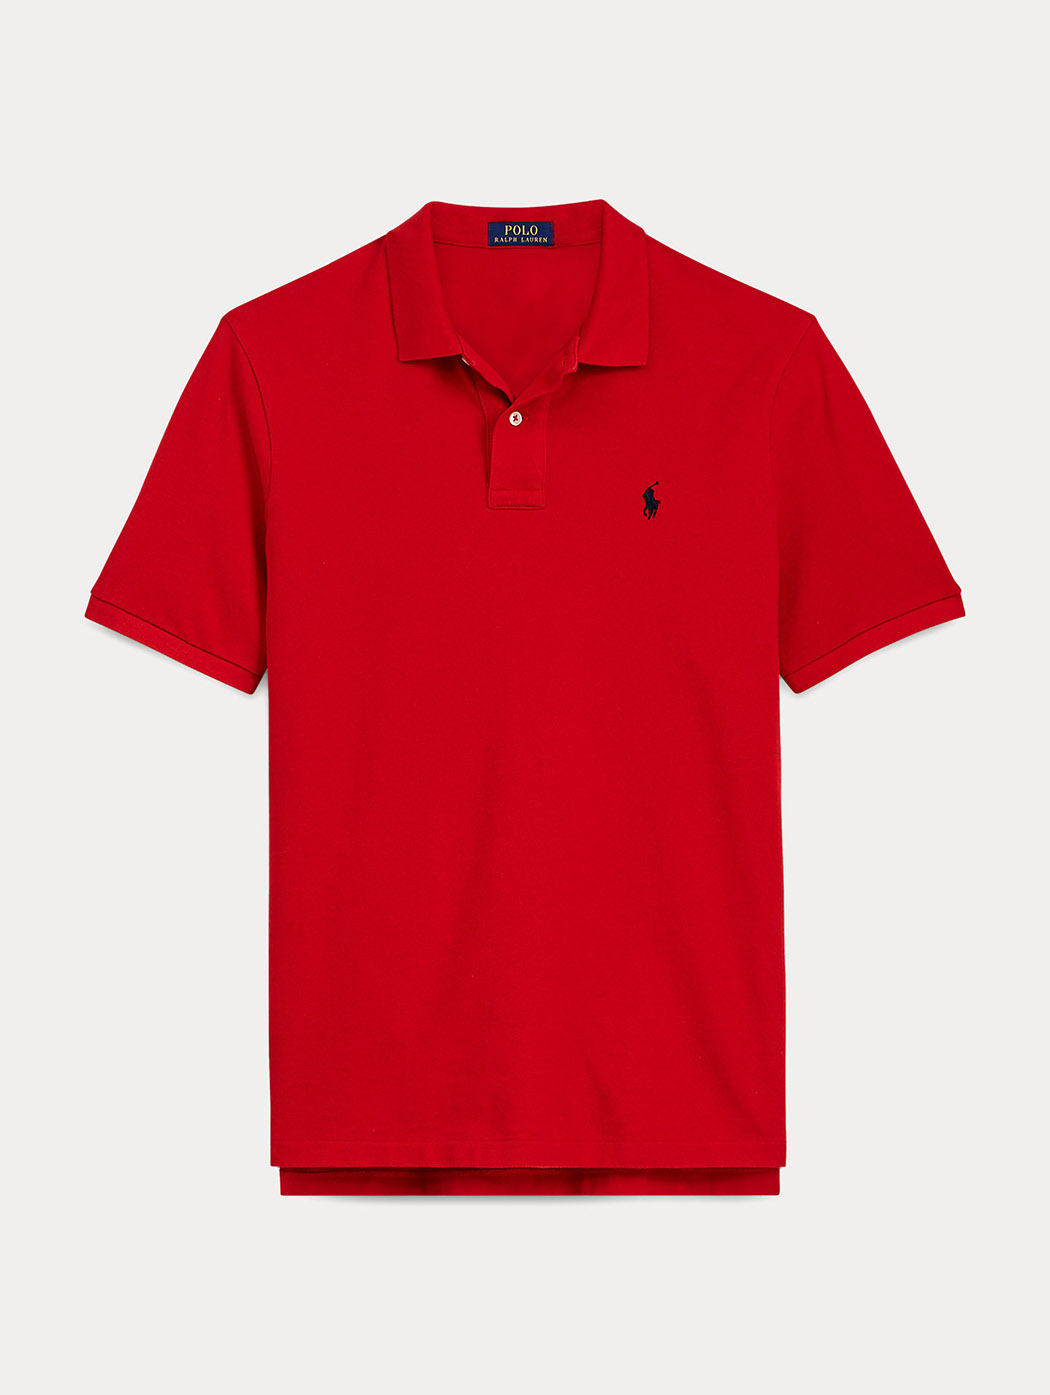 POLO RALPH LAUREN UOMO 71054 005 POLO